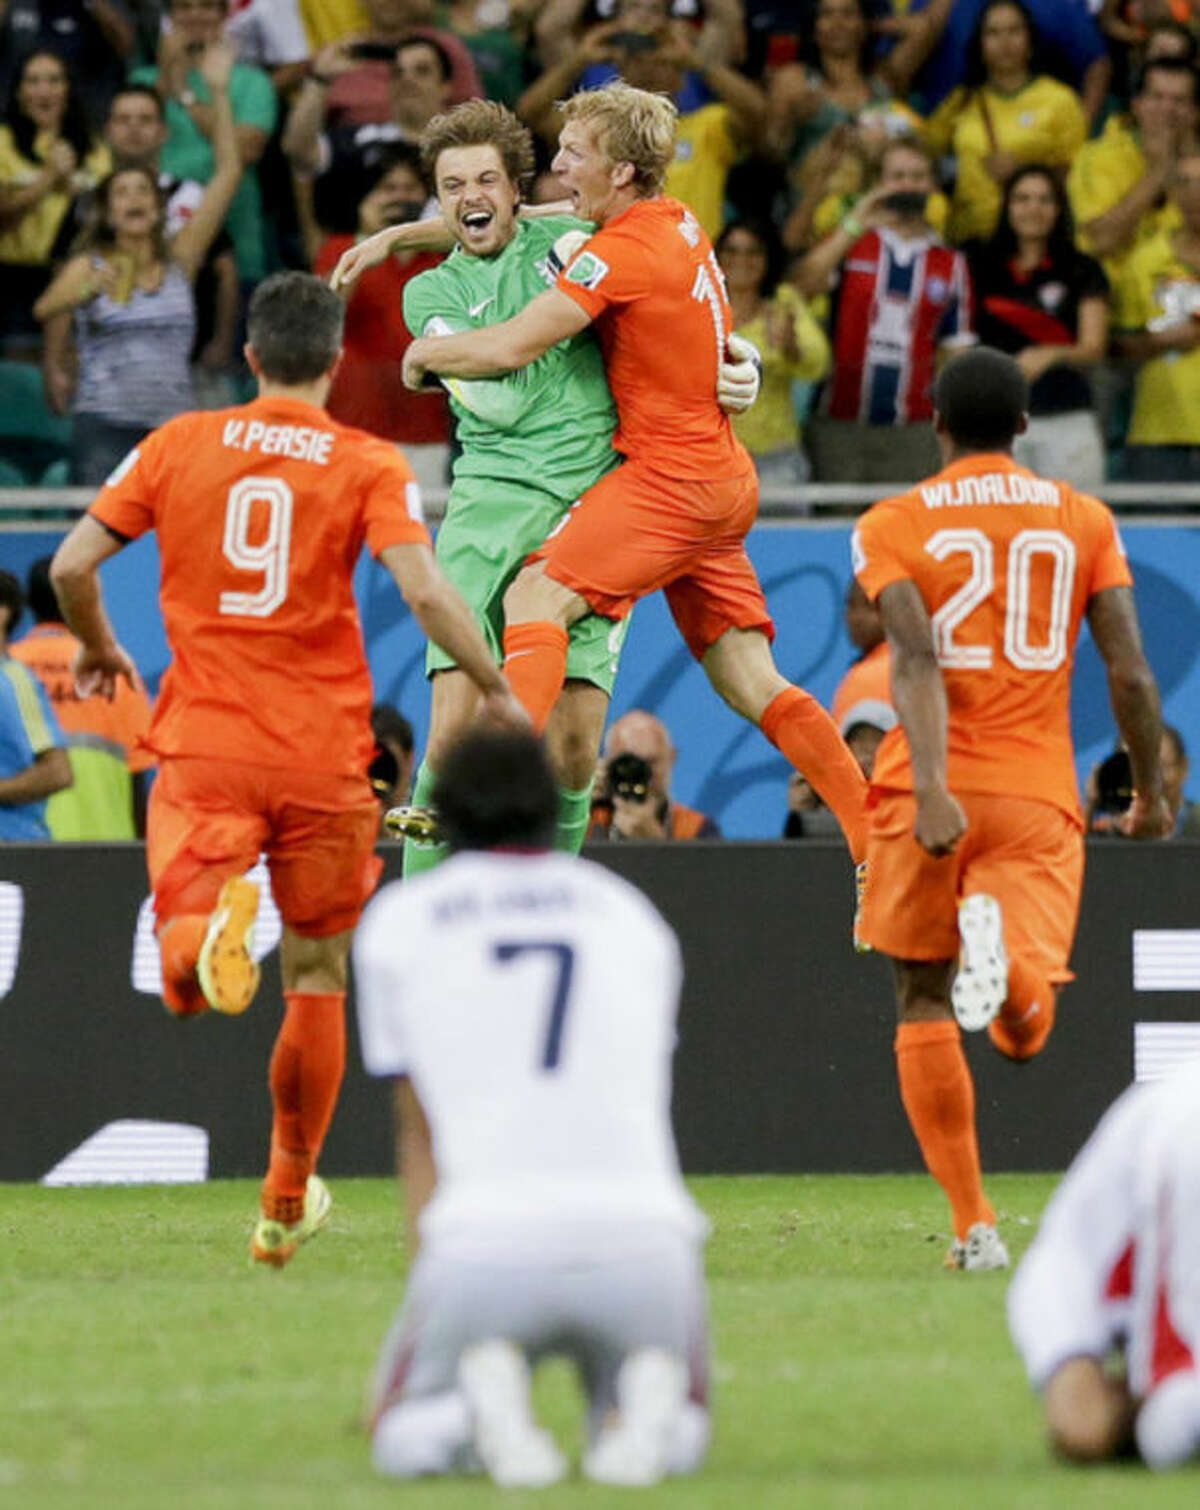 Netherlands' goalkeeper Tim Krul, center left, celebrates after making the final save in a penalty shoot out during the World Cup quarterfinal soccer match between the Netherlands and Costa Rica at the Arena Fonte Nova in Salvador, Brazil, Saturday, July 5, 2014. The Netherlands won 4-3 0n penalties after the match ended 0-0 after extra time. (AP Photo/Matt Dunham)